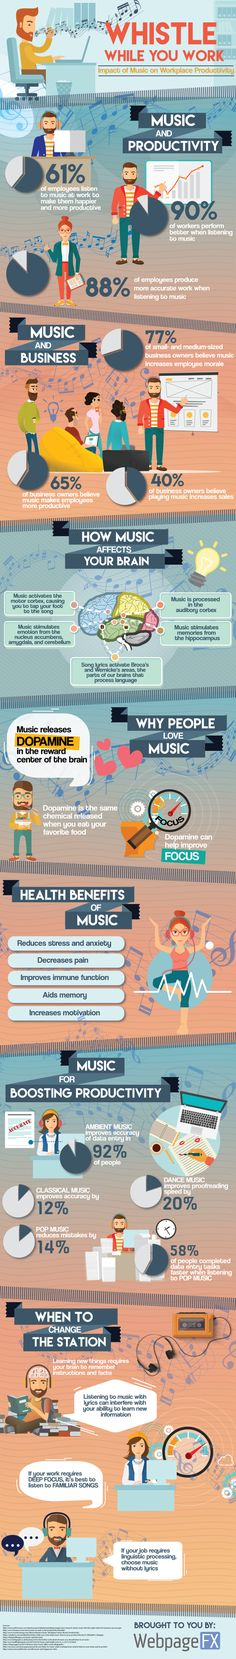 What Is The Outcome Of Music On Productivity? #infographic